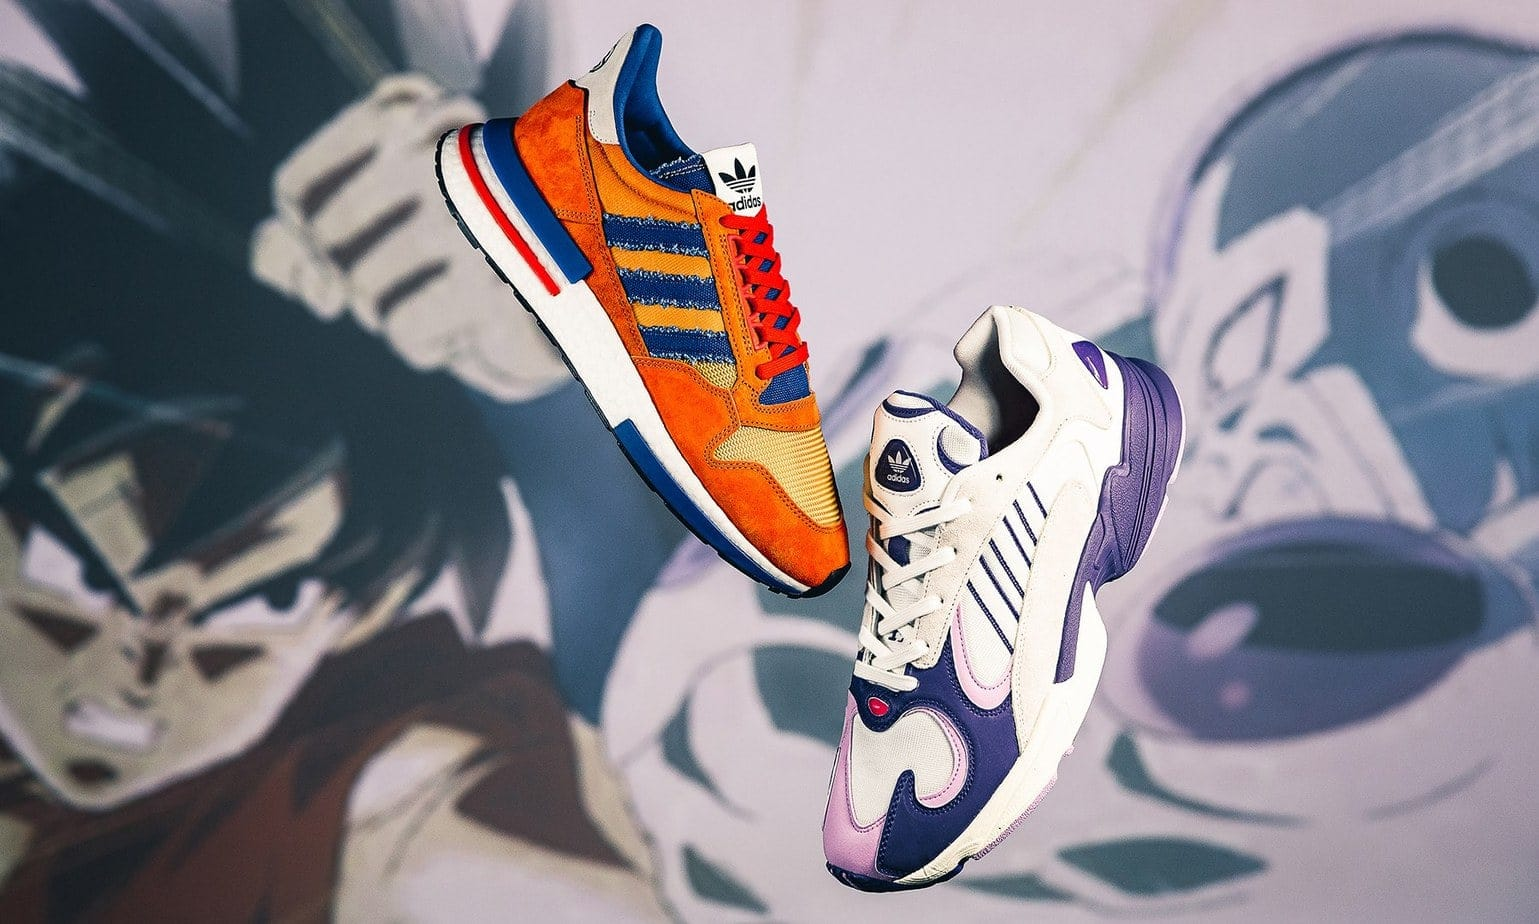 online retailer 828f8 0a875 The first round of the Dragon Ball Z x adidas collection is releasing this  Saturday, September 29th with the ZX 500 RM Goku and Yung 1 Frieza.